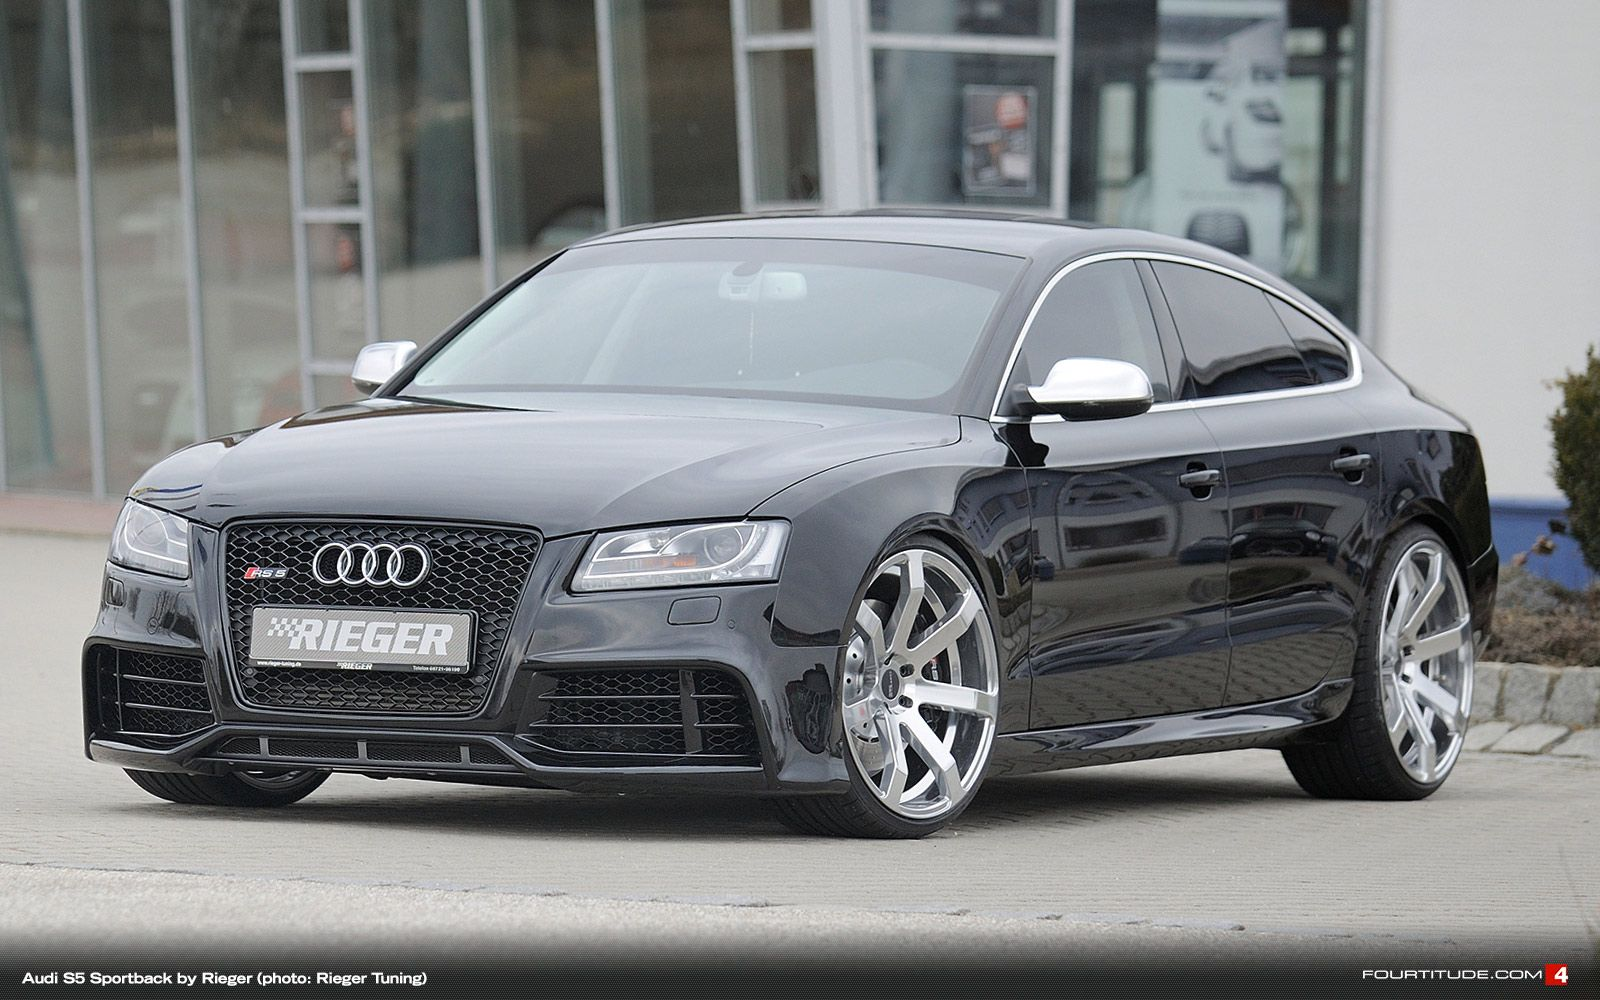 Rieger tuning gives audi a5 s5 sportback an rs look fourtitude com